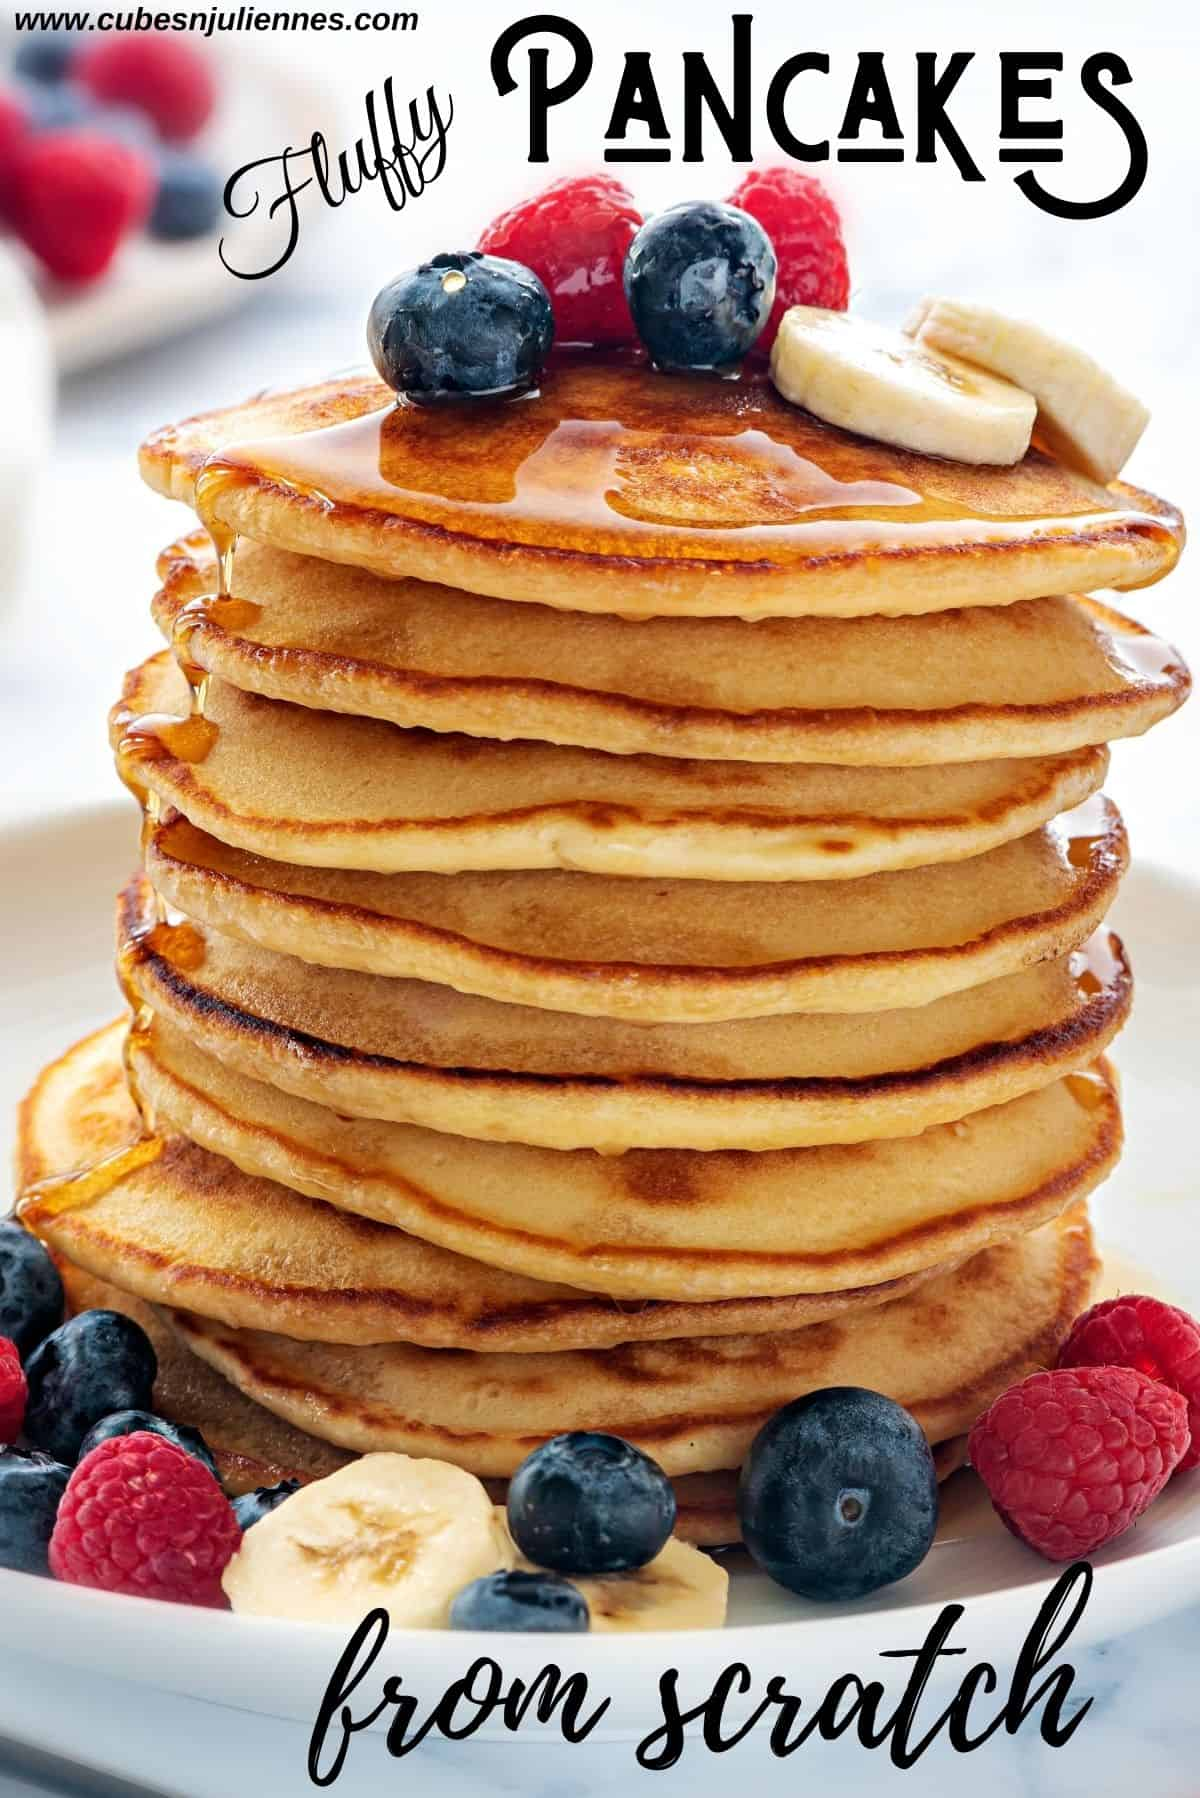 Close up shot of stacked pancakes topped with maple syrup, berries and banana slices.